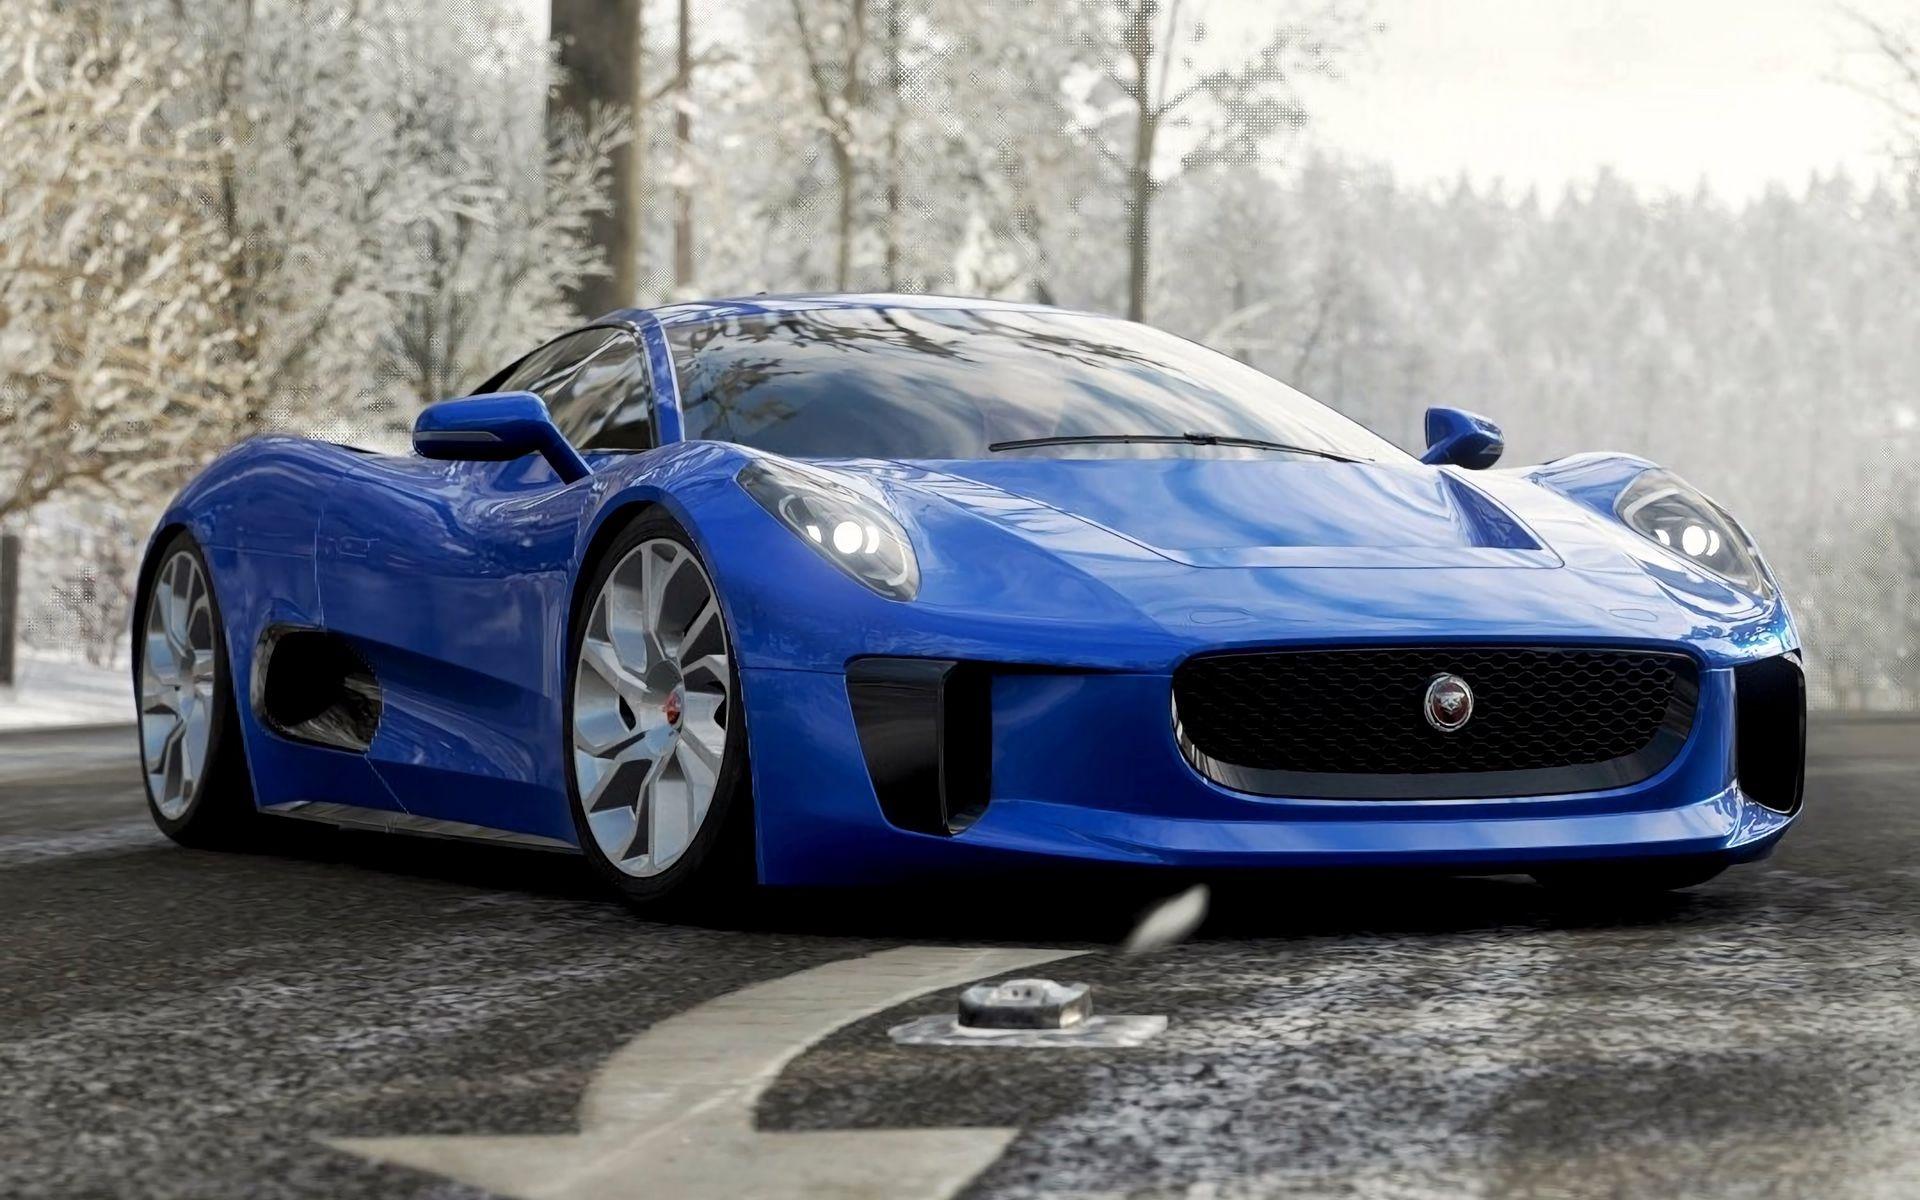 New Supercars Hd Wallpaper New Supercars Super Cars Jaguar